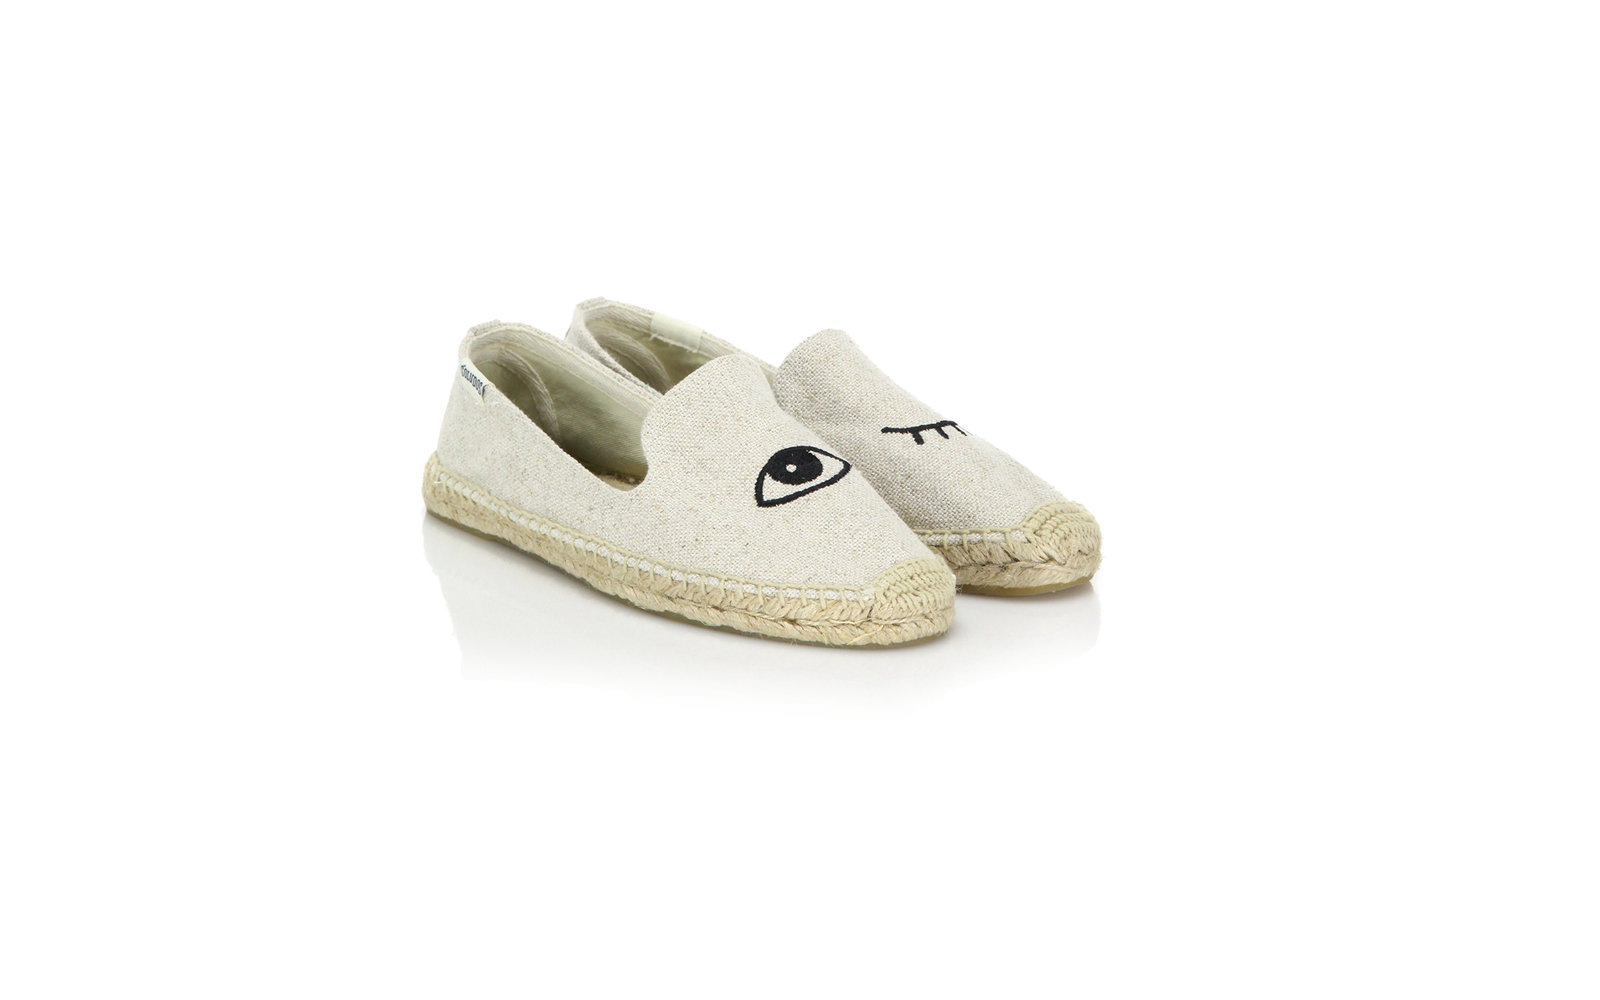 Jason Polan x Soludos Sand women's shoes